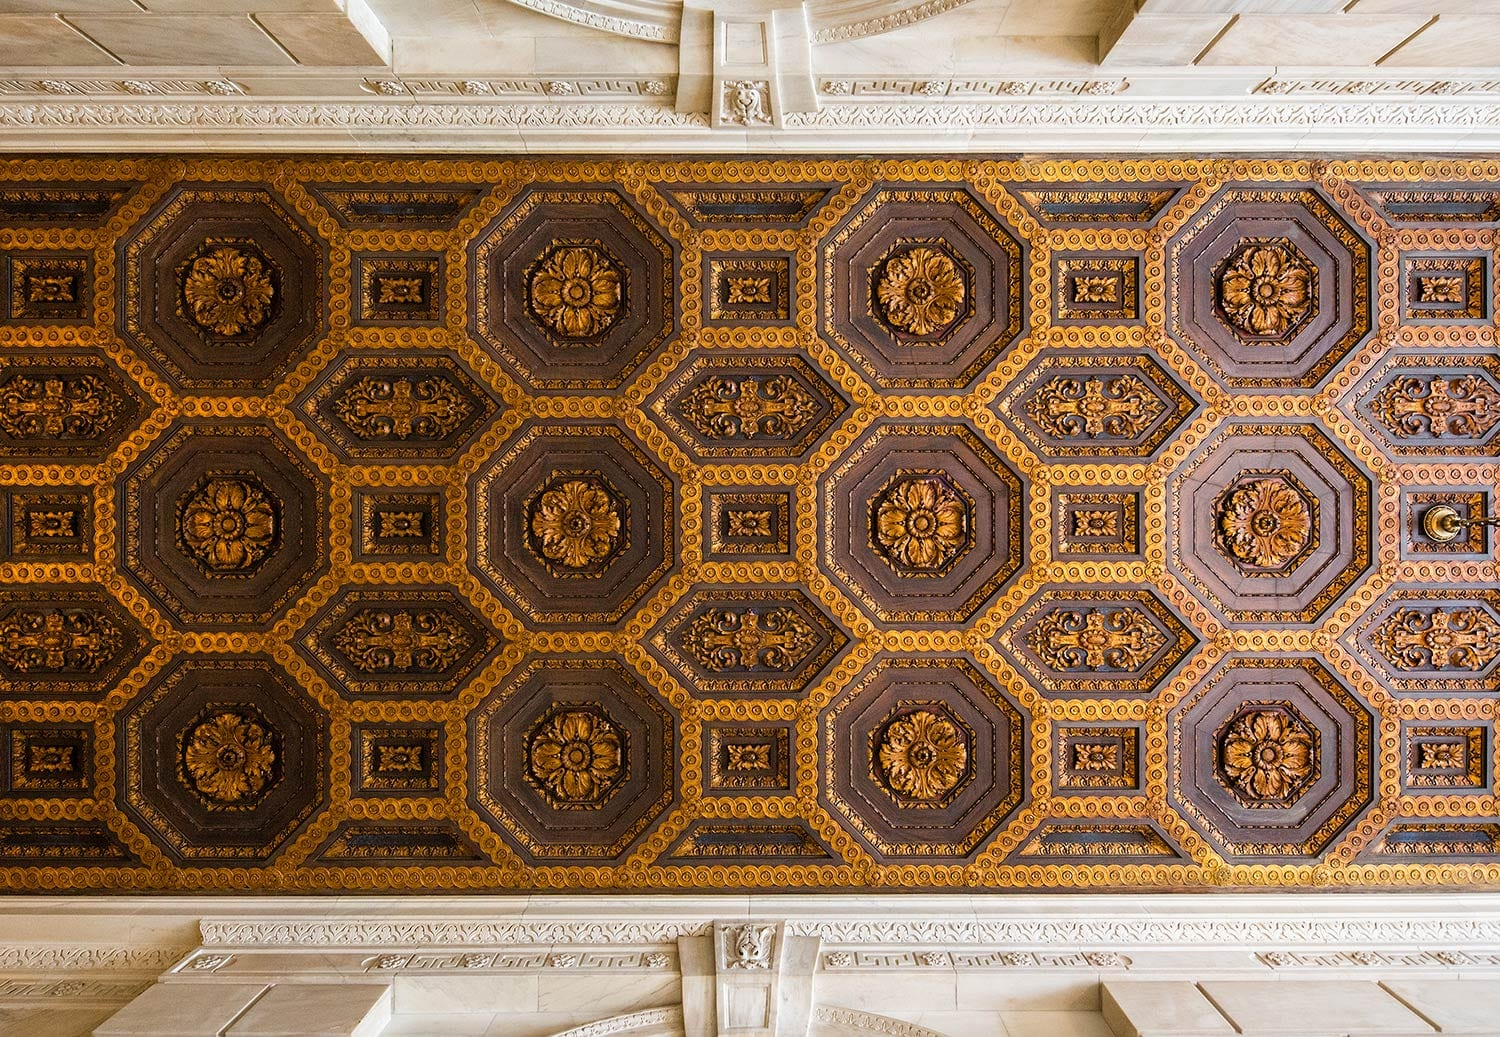 ornate ceiling at New York Public Library